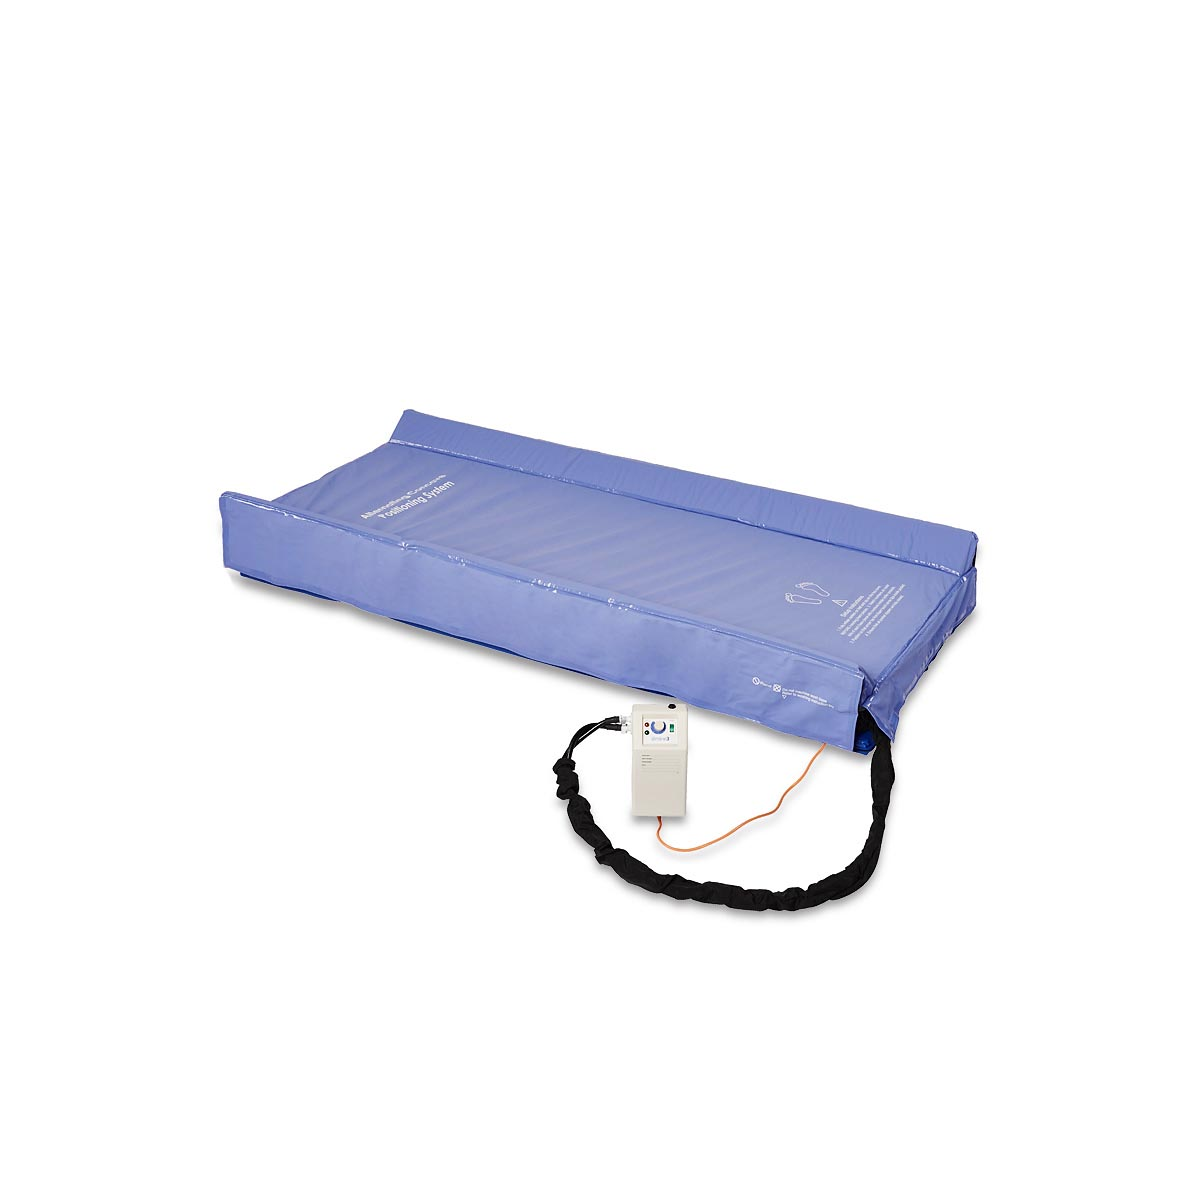 Slimline Air Mattress & Concave Cover